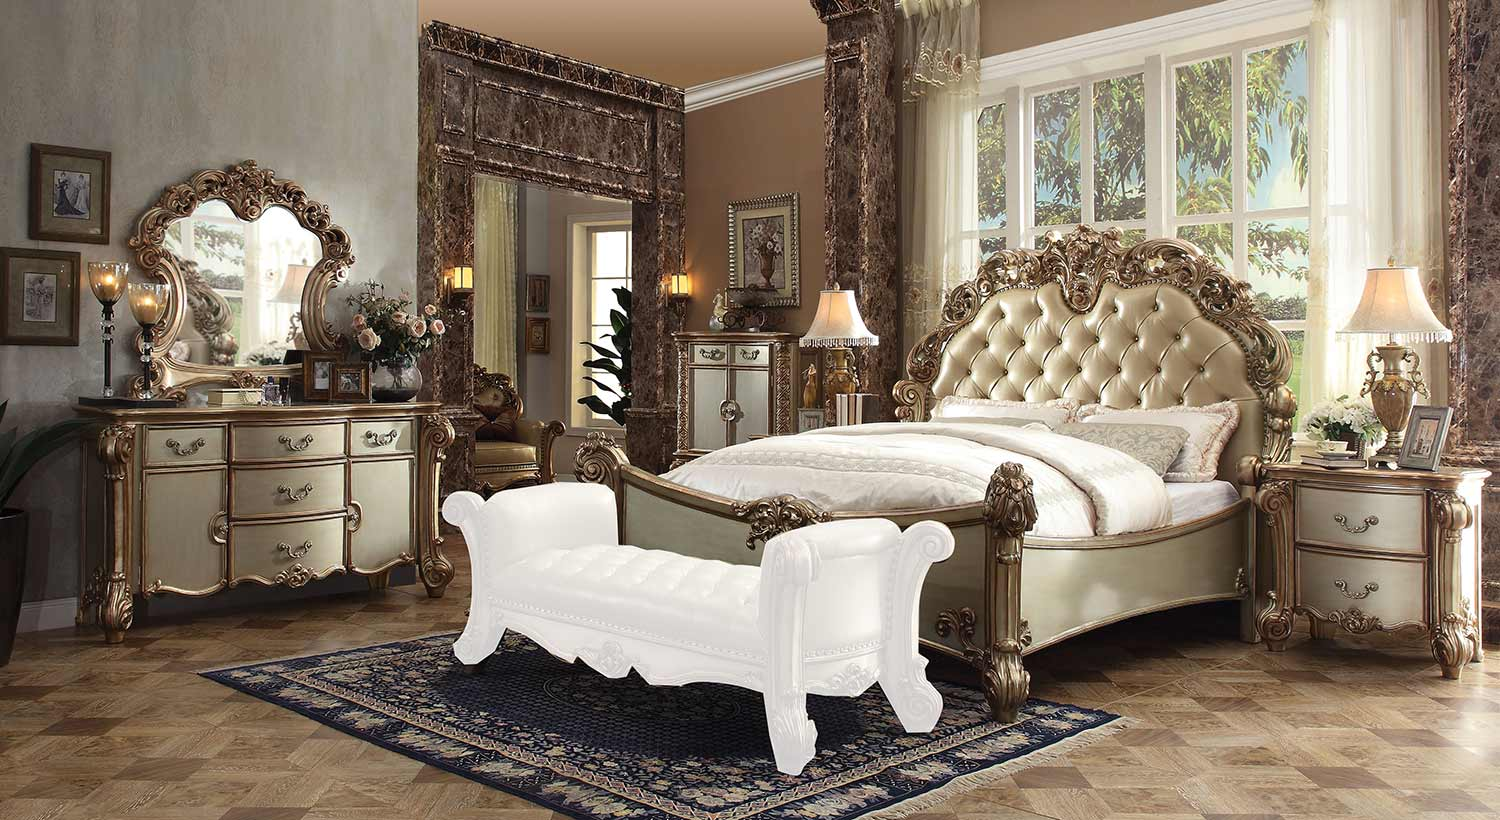 Acme Vendome Bedroom Set - Bone Vinyl/Gold Patina